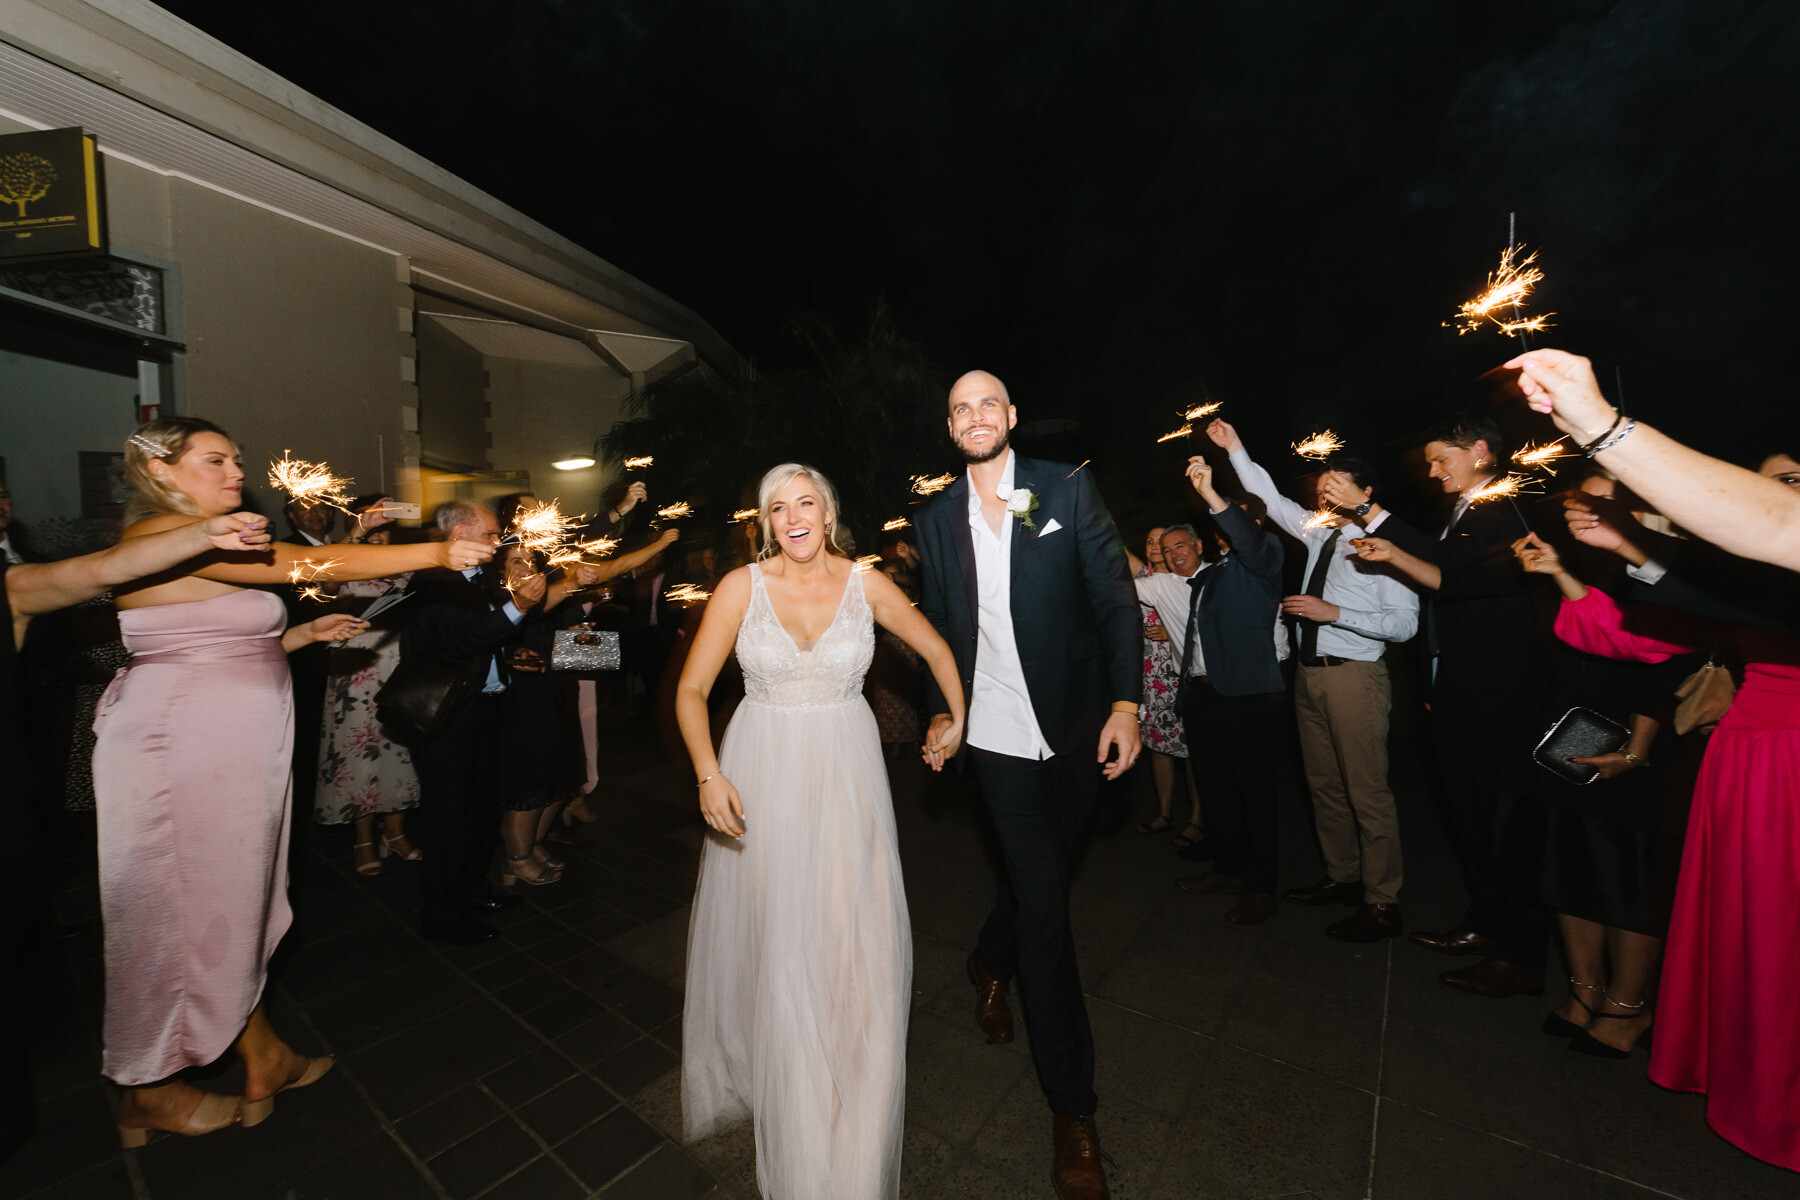 What are the different styles of wedding photography?